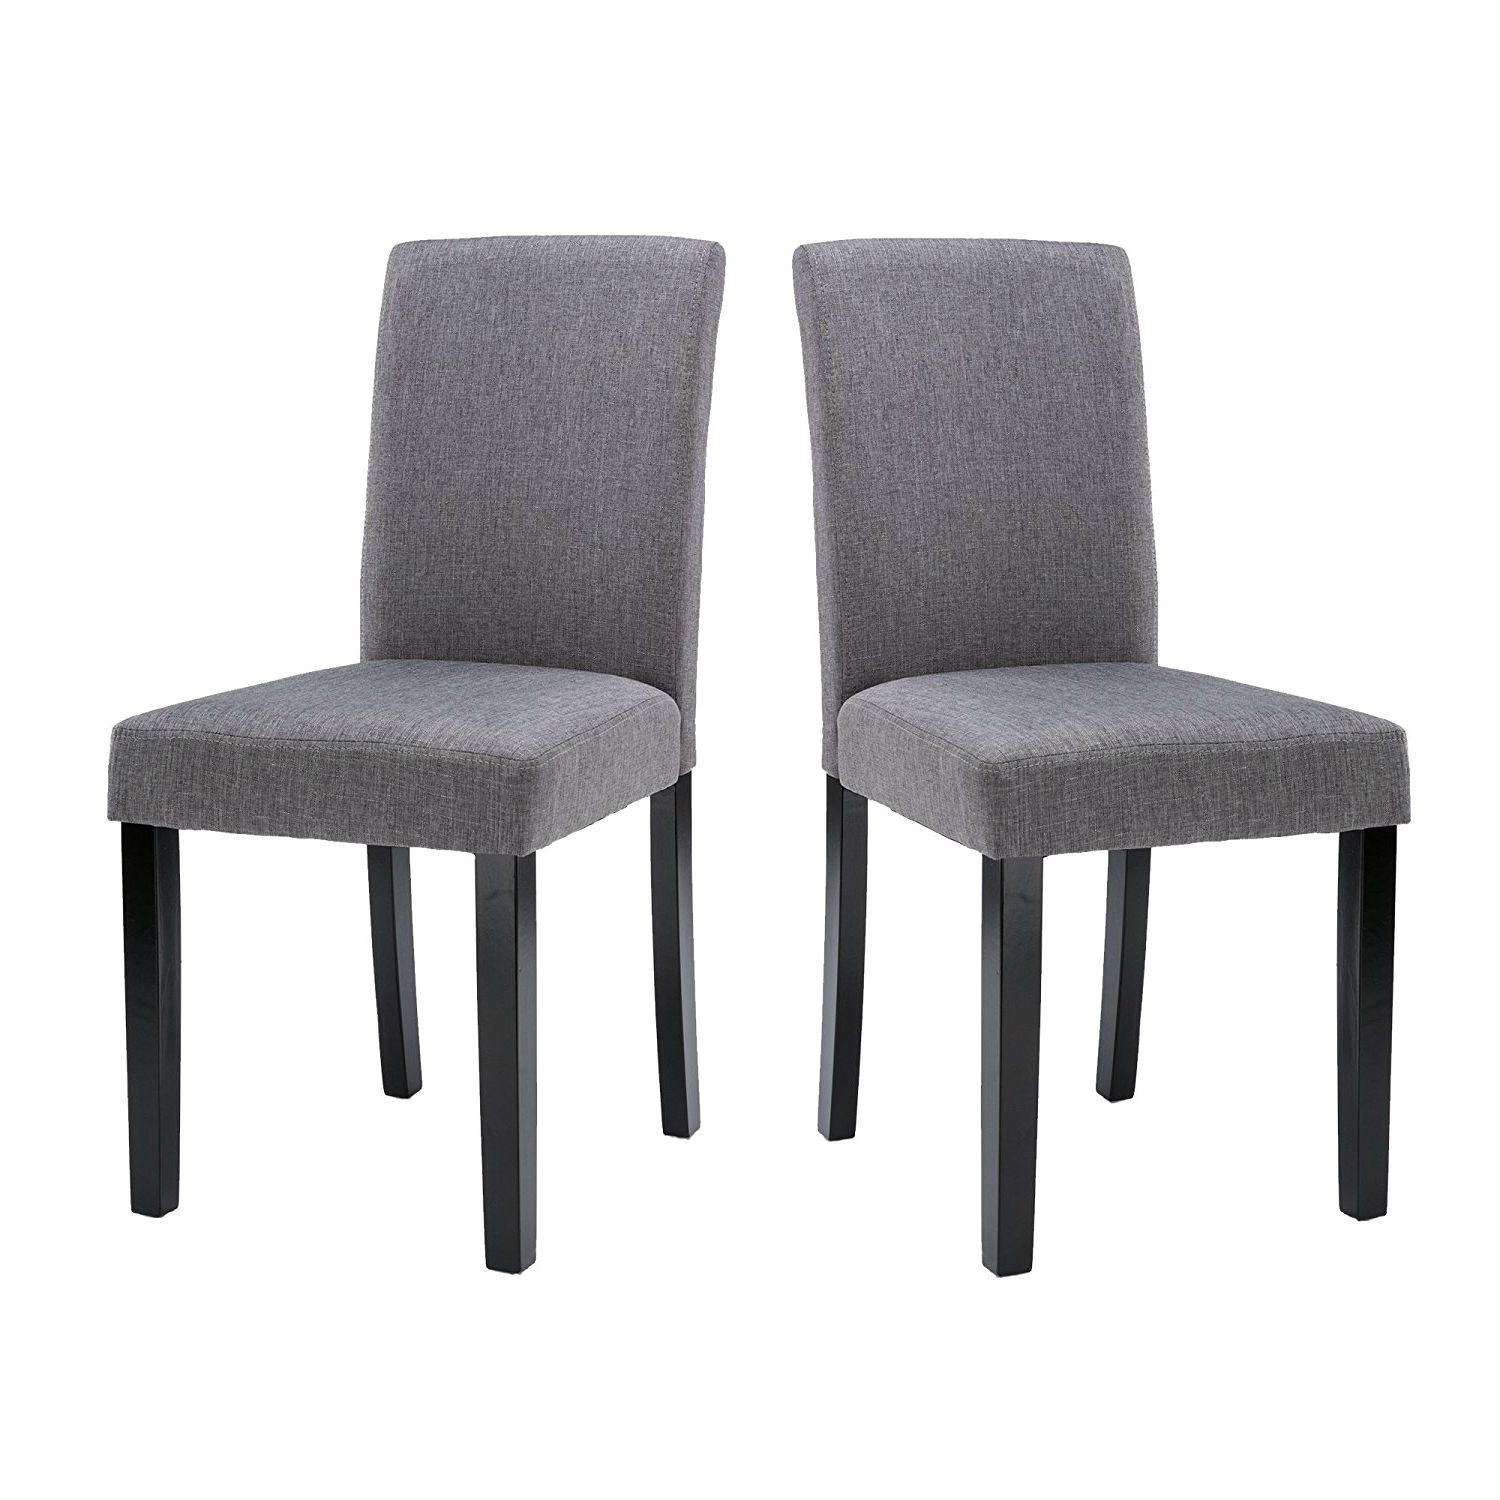 black wood dining chair. Set Of 2 - Grey Fabric Dining Chairs With Black Wood Legs Chair G